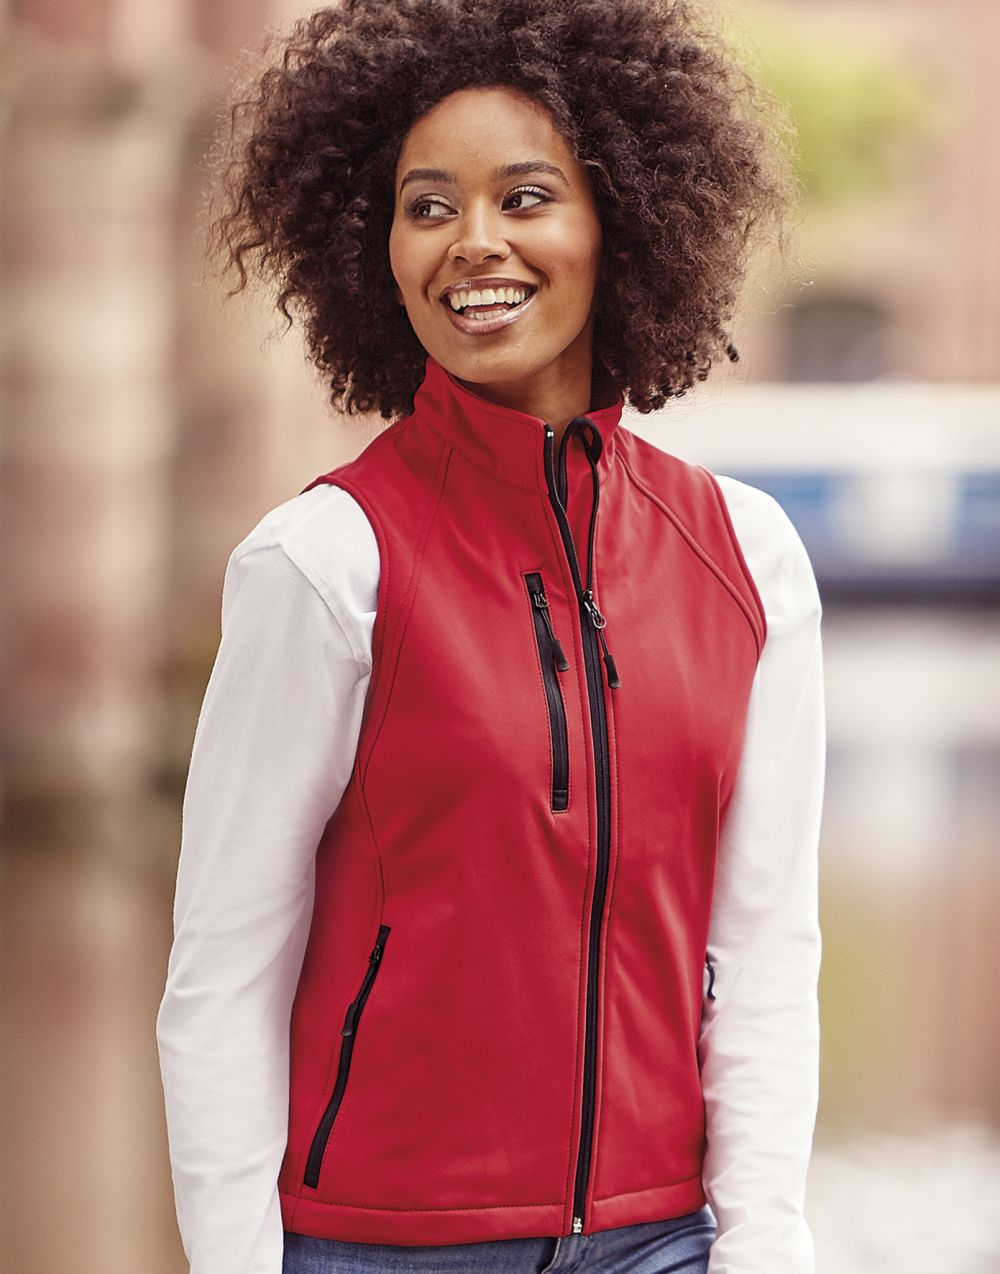 Chalecos russell softshell mujer imagen 2